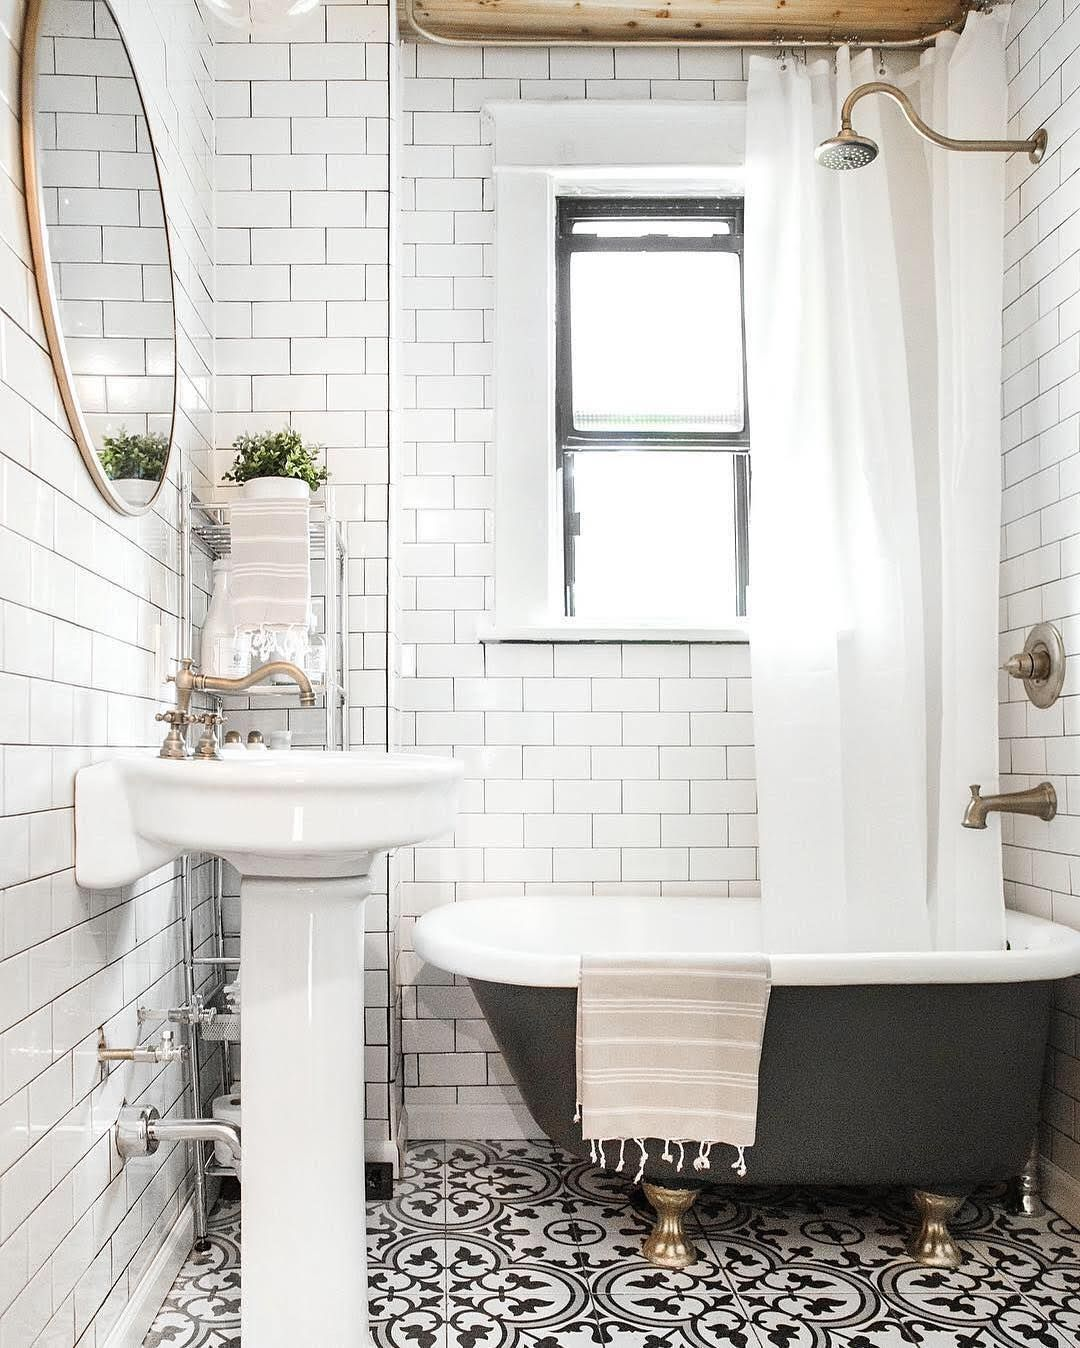 Bon Freshen Up Your Bathroom In 2017 With This Mixed Tile Trend | Brit + Co